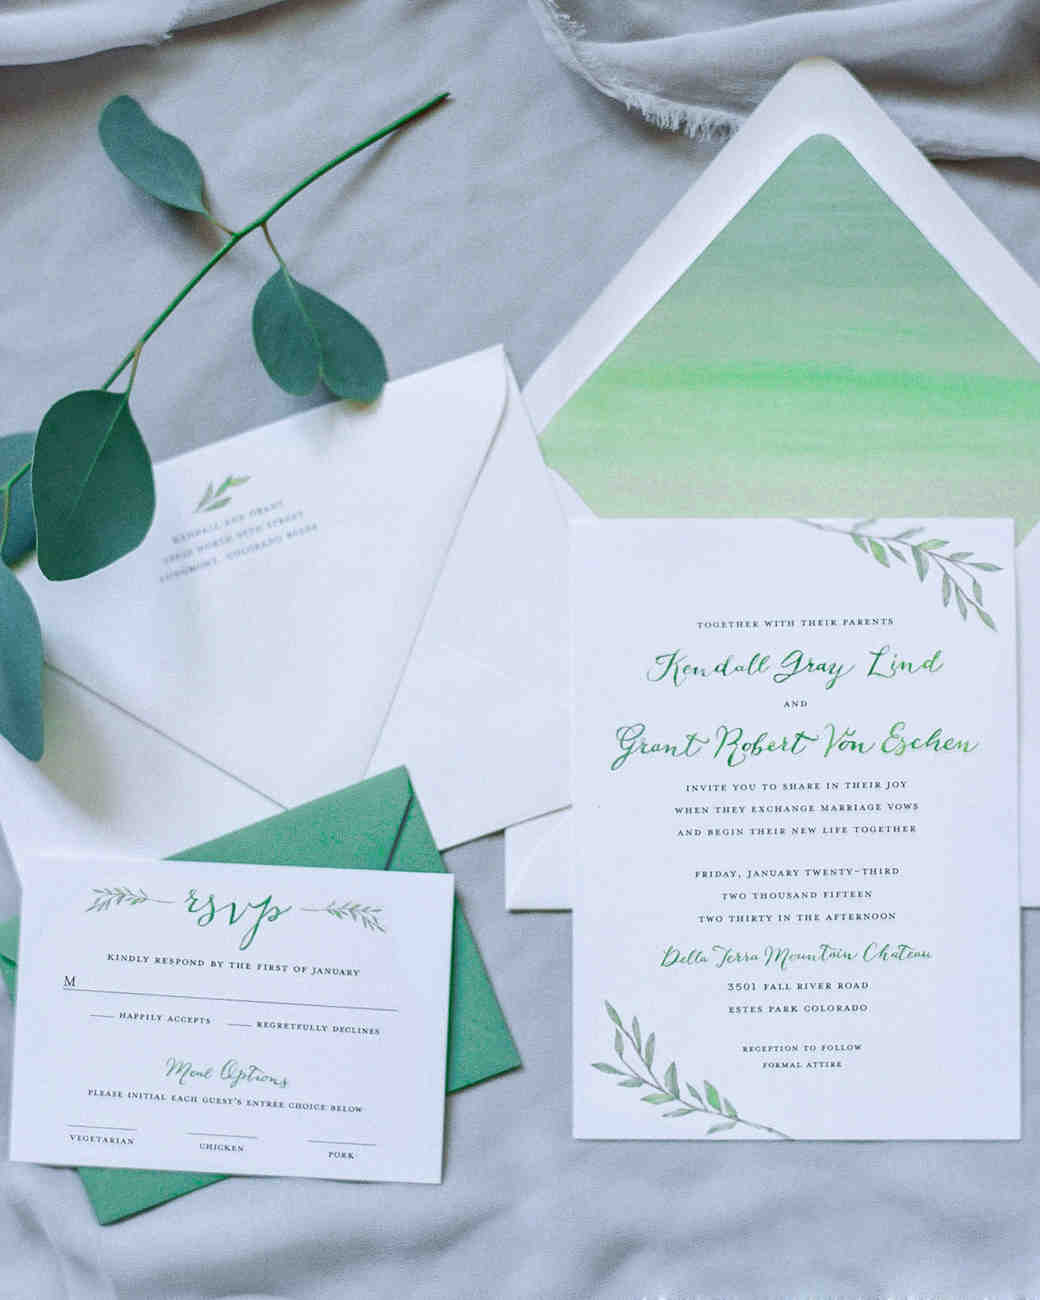 kendall-grant-wedding-invite-012-s112328-1215.jpg